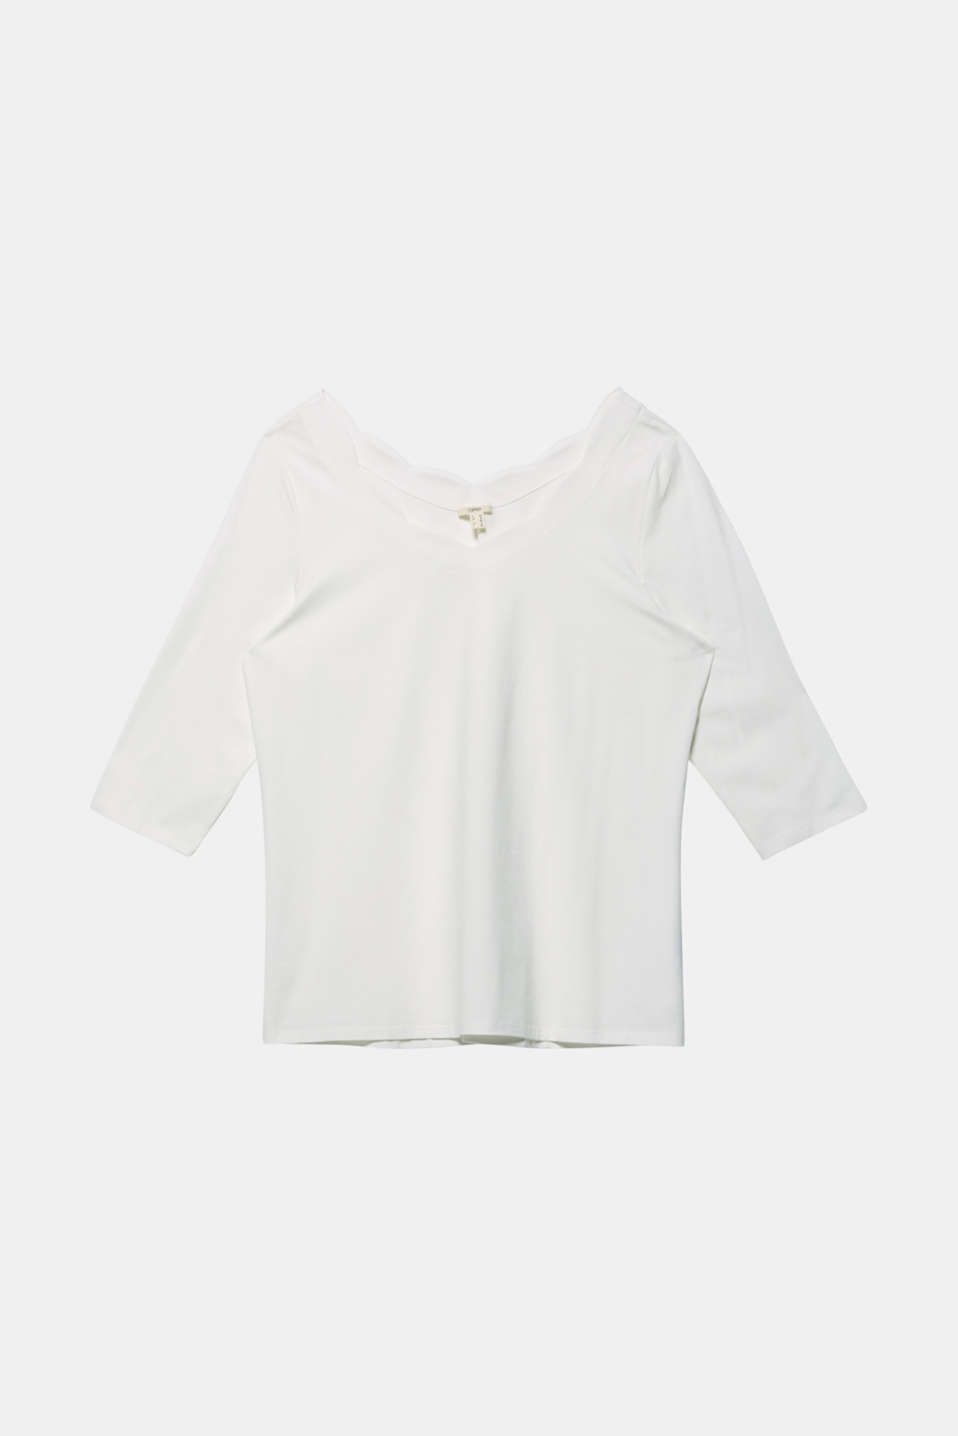 CURVY top with wavy details, OFF WHITE, detail image number 5